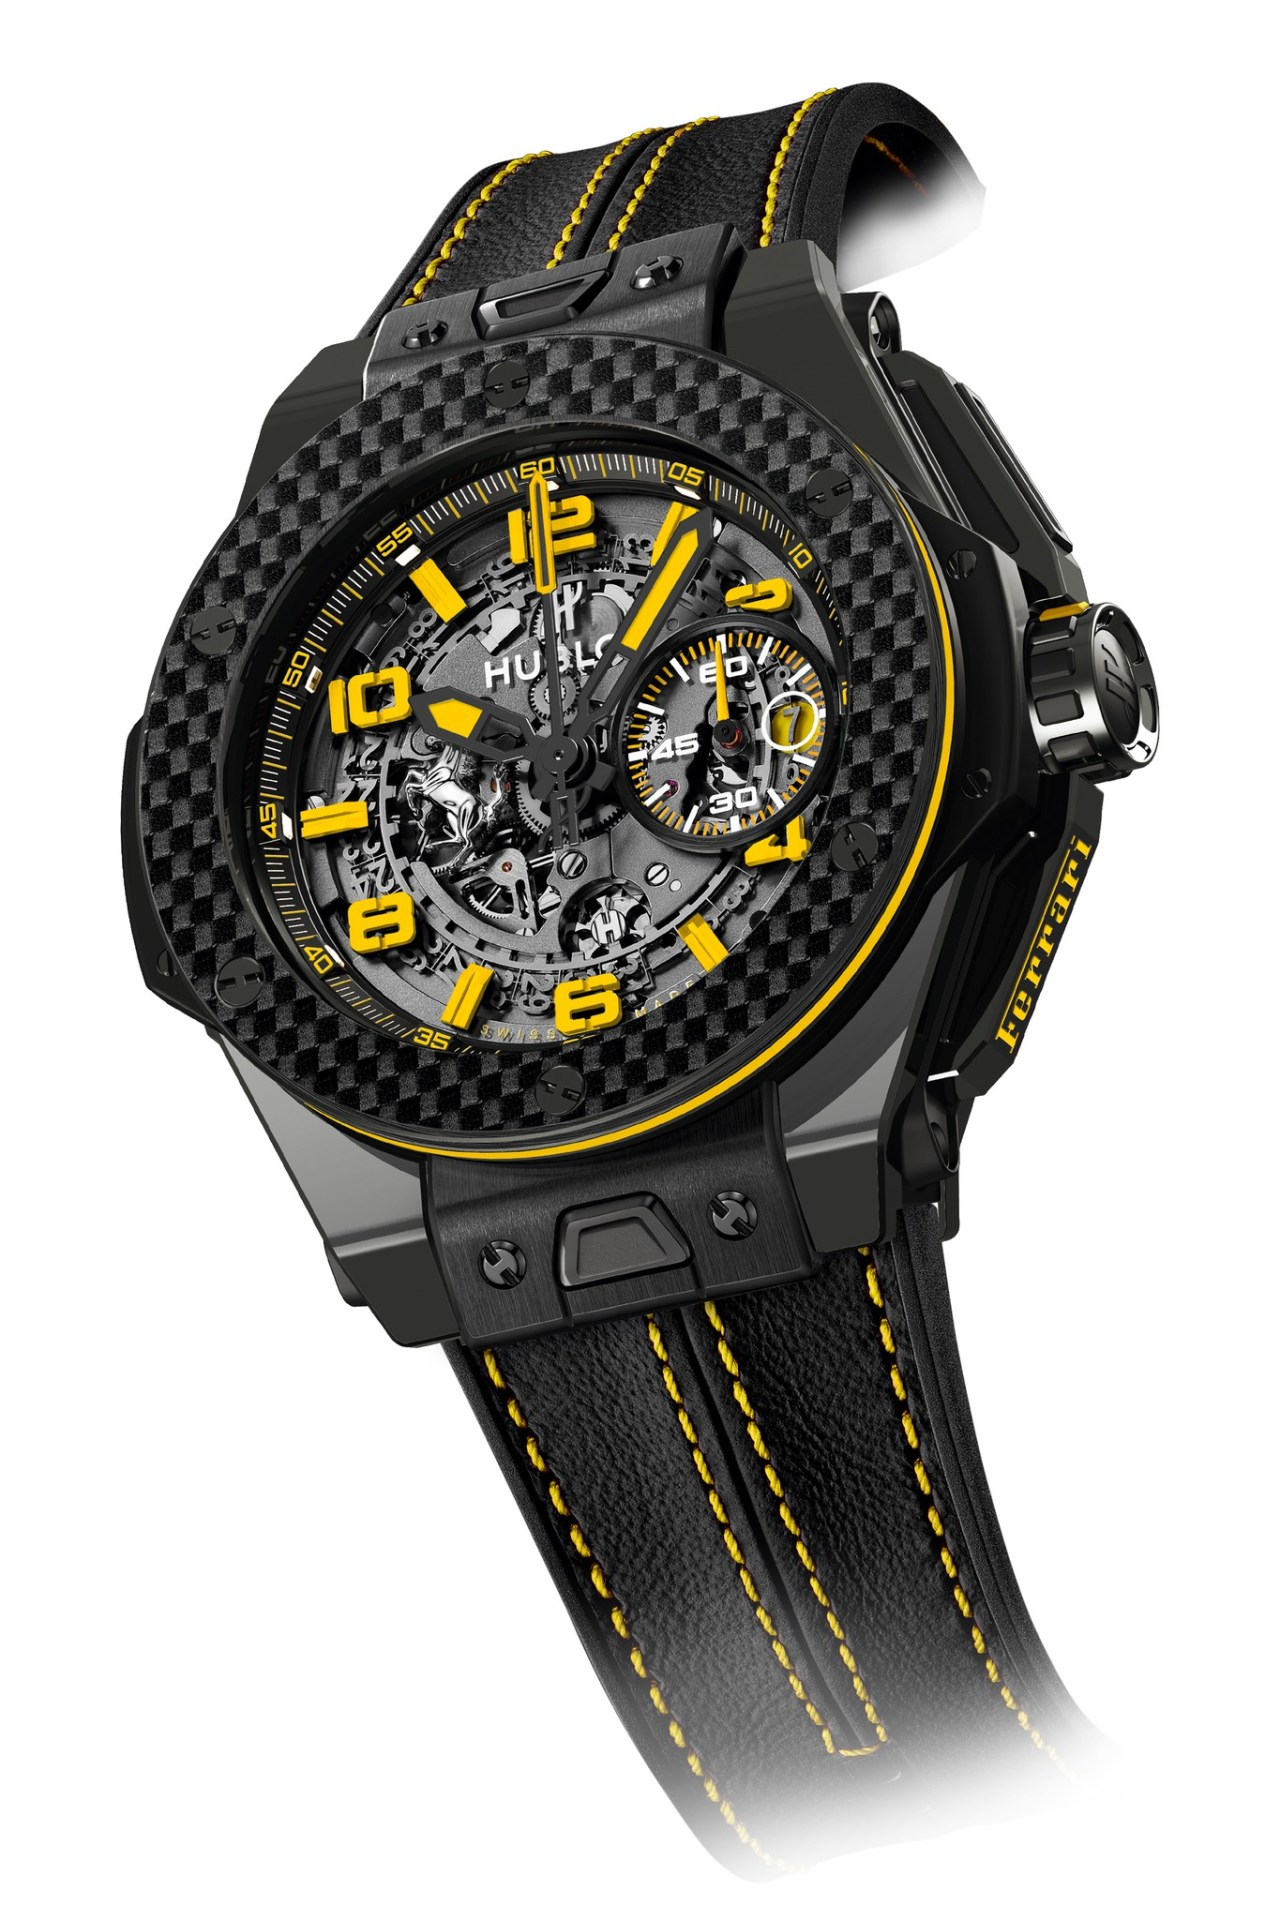 hublot%20%20401-cq-0129-vr%20watch1